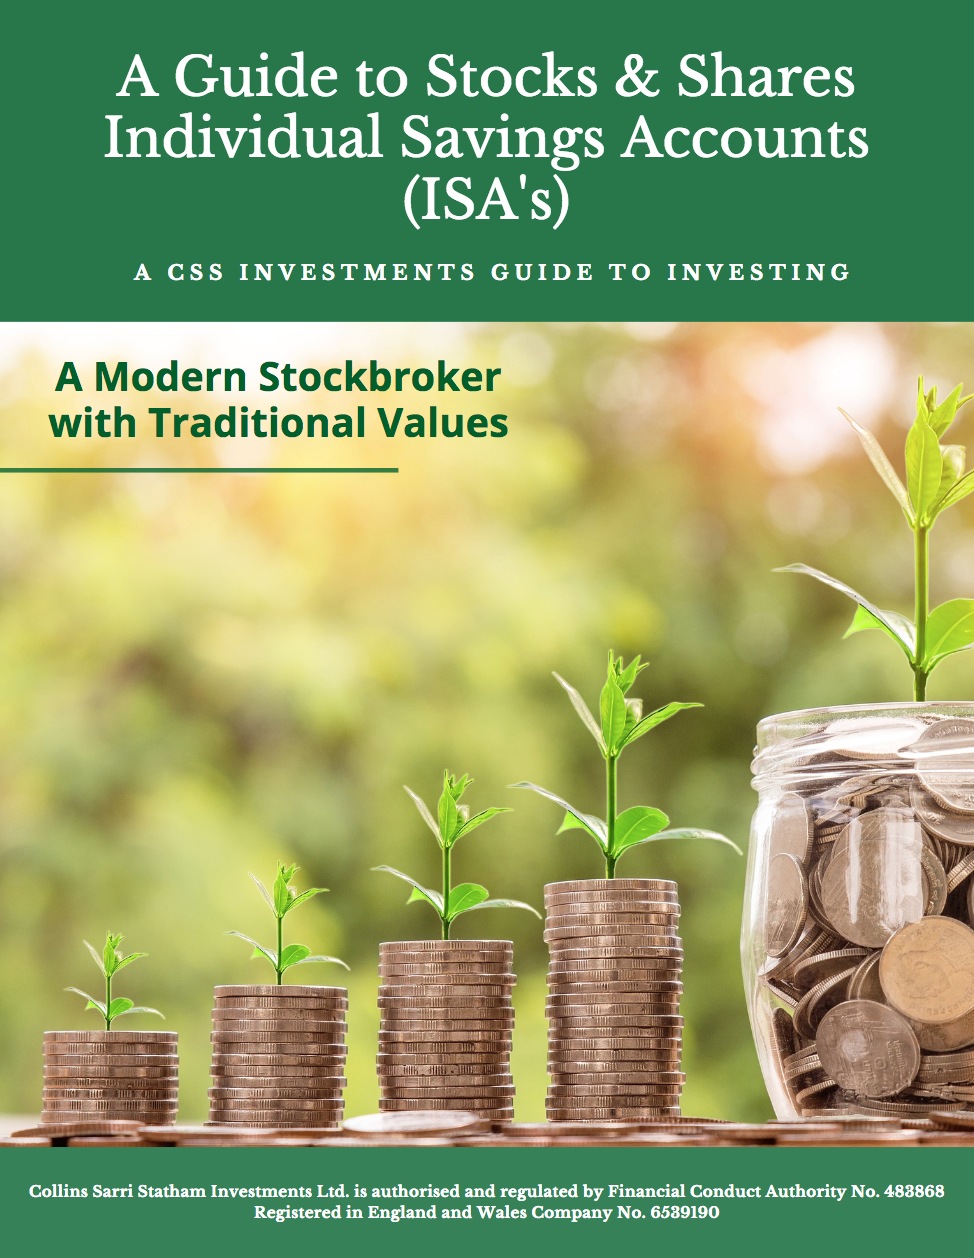 A GUIDE TO STOCKS & SHARES ISAs 2018/2019